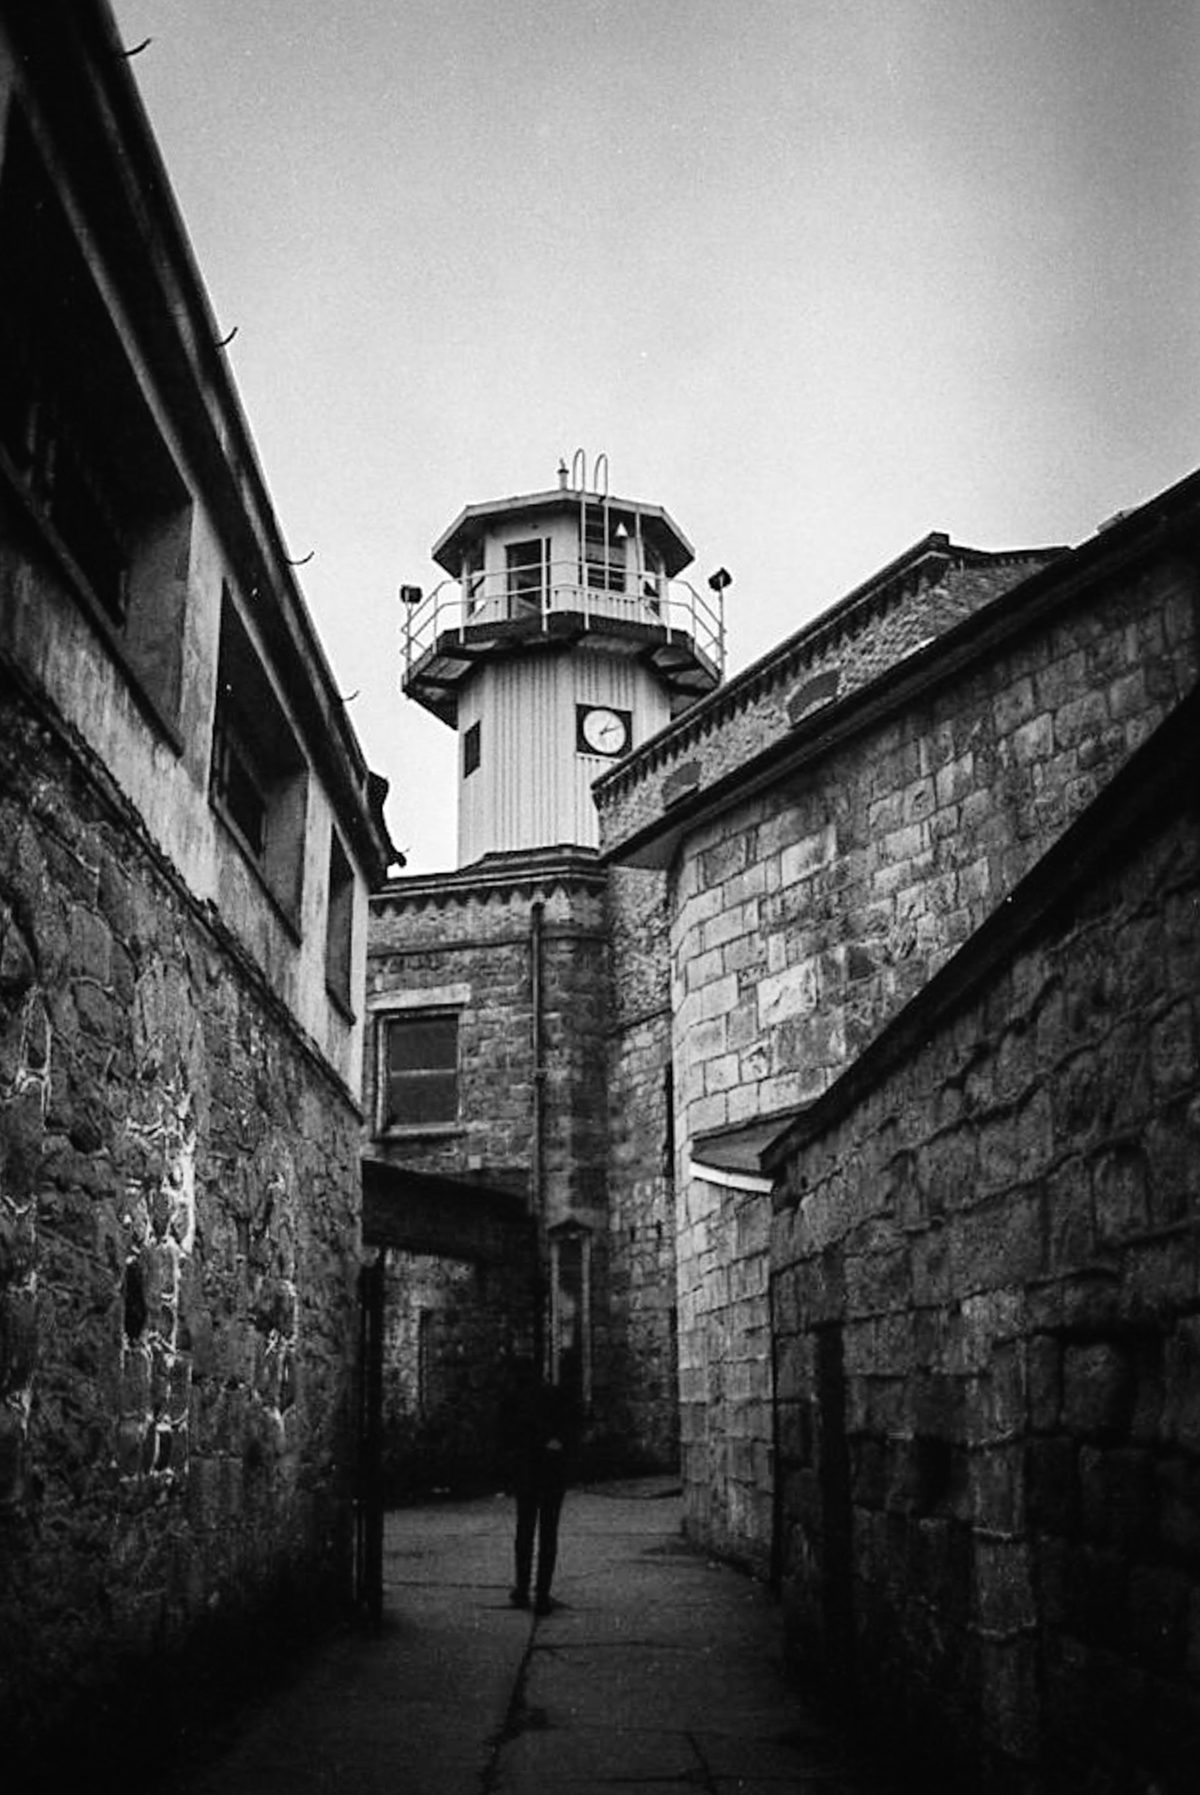 Another opportunity to photograph a shadowy subject near the guard tower. Even if you don't believe in ghosts, a haunting presence is felt everywhere you go here.